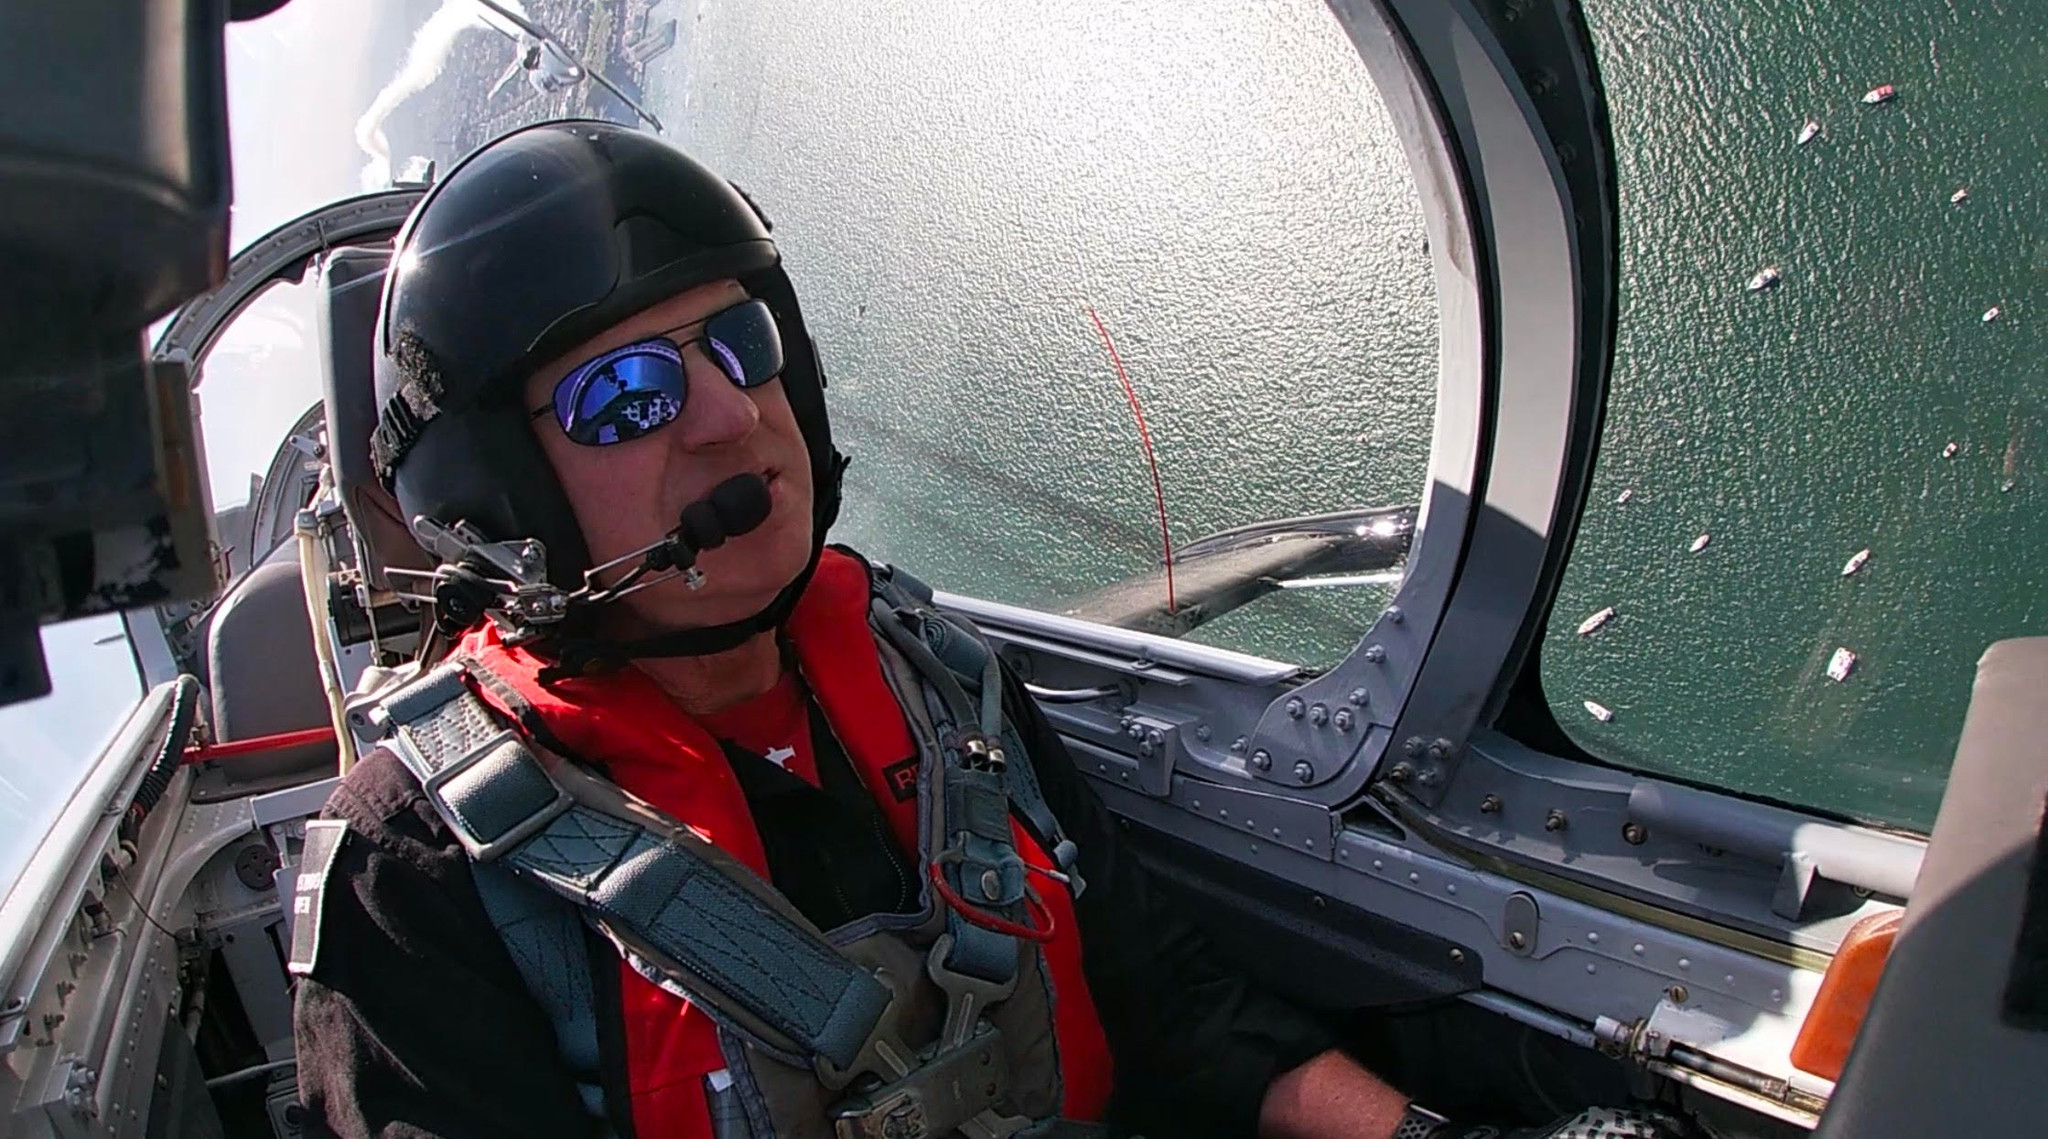 """Meet Scott """"Intake"""" Kartvedt: A solo pilot flying to honor all who serve"""